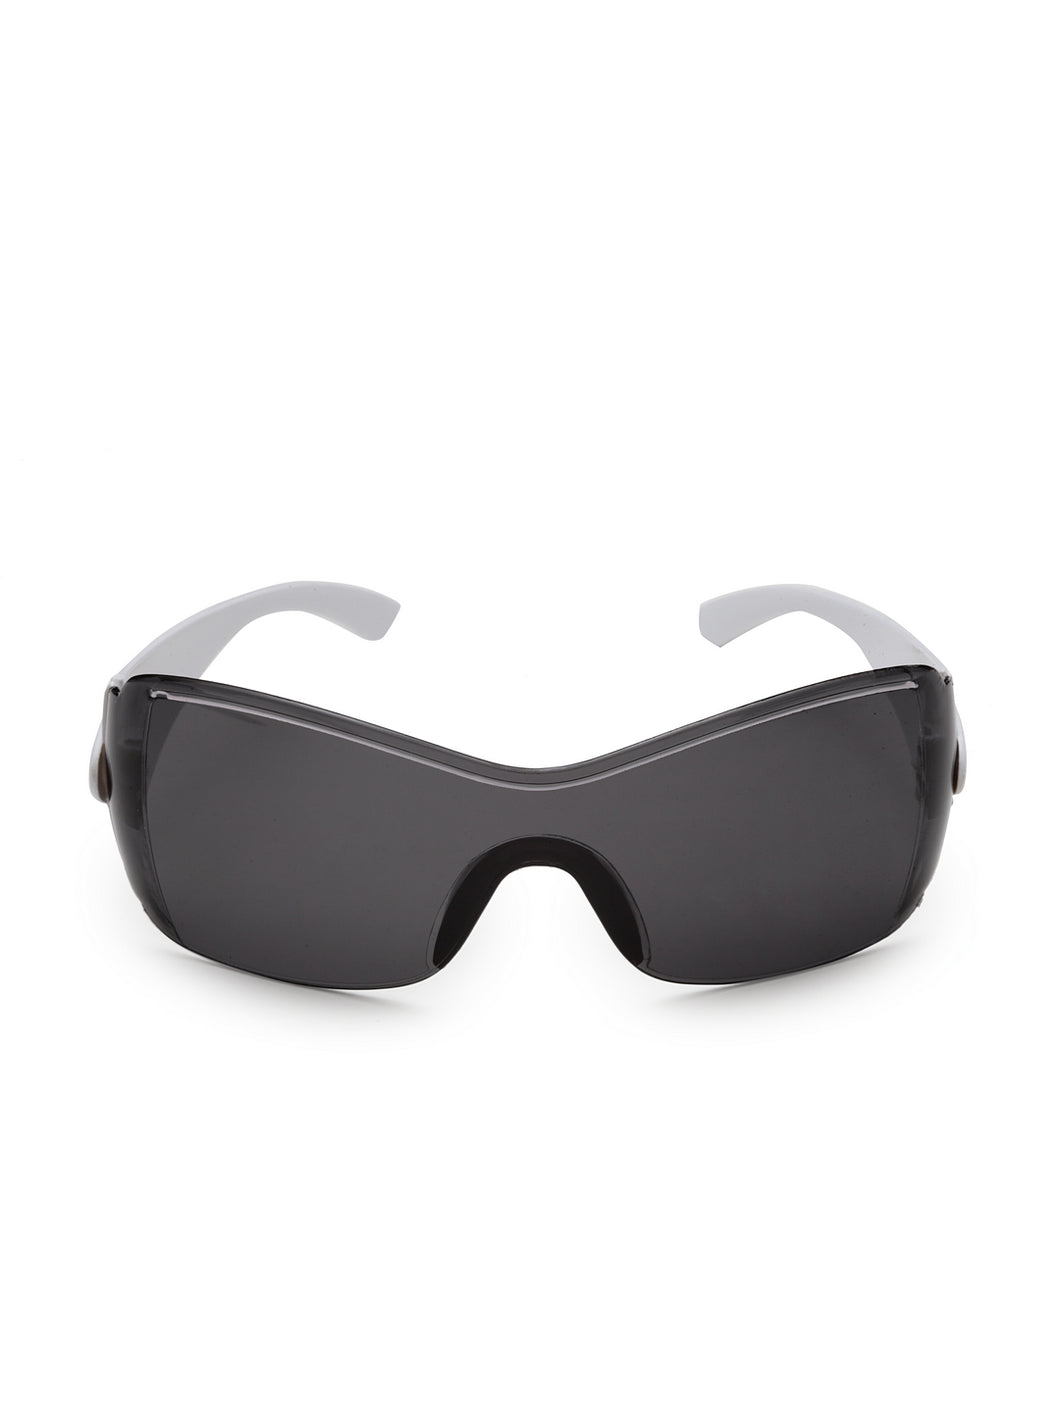 Stol'n Premium Attractive Fashionable UV-Protected Sports Sunglasses - Black